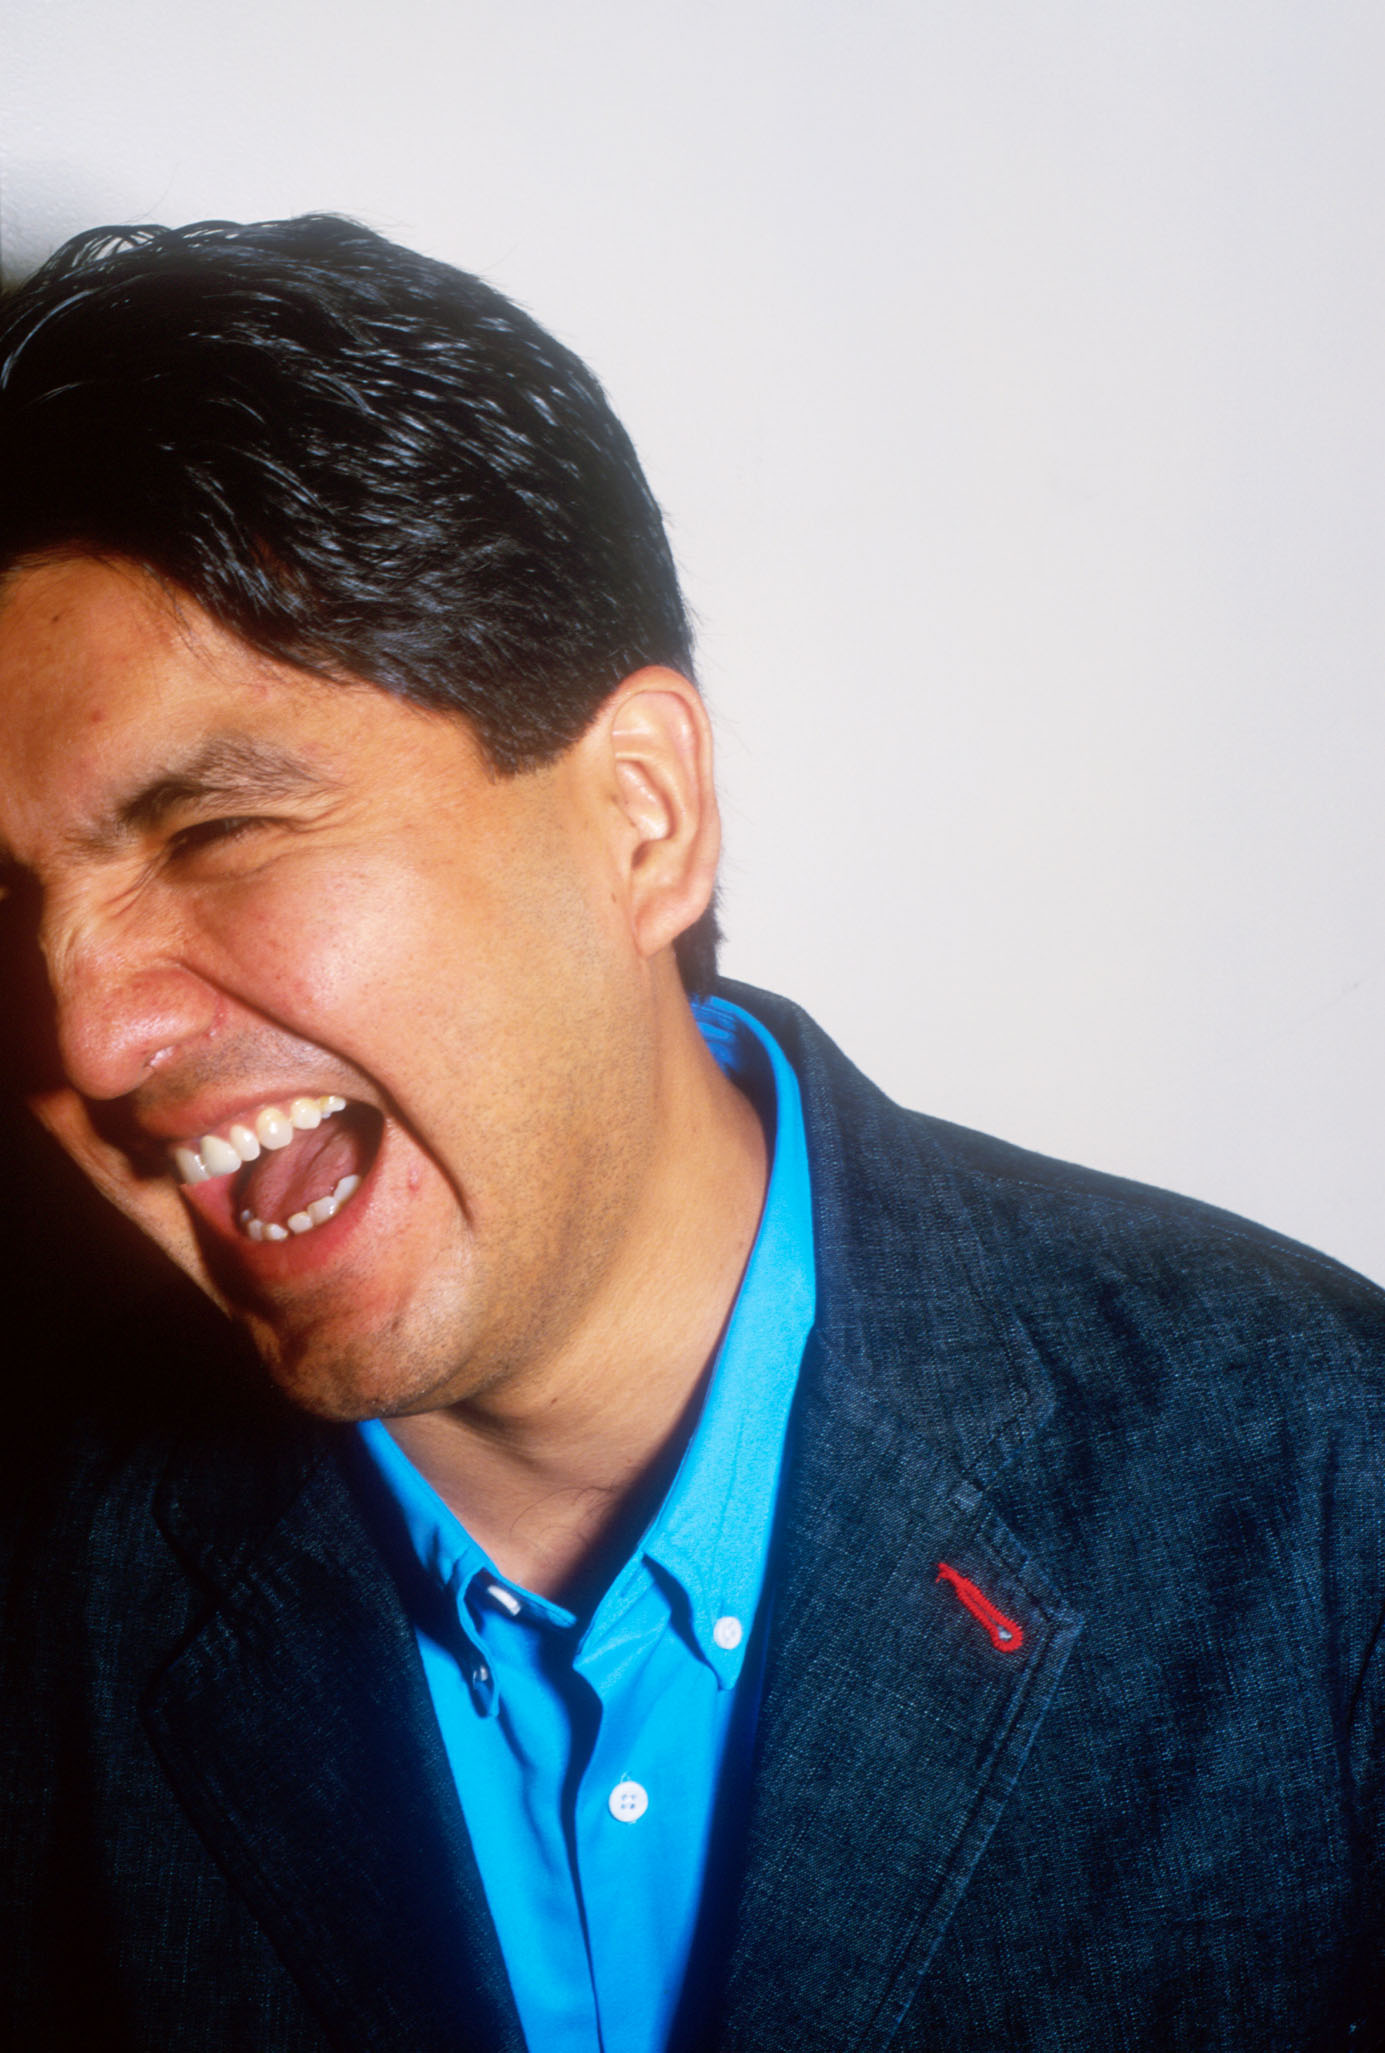 Sherman Alexie's quote #1